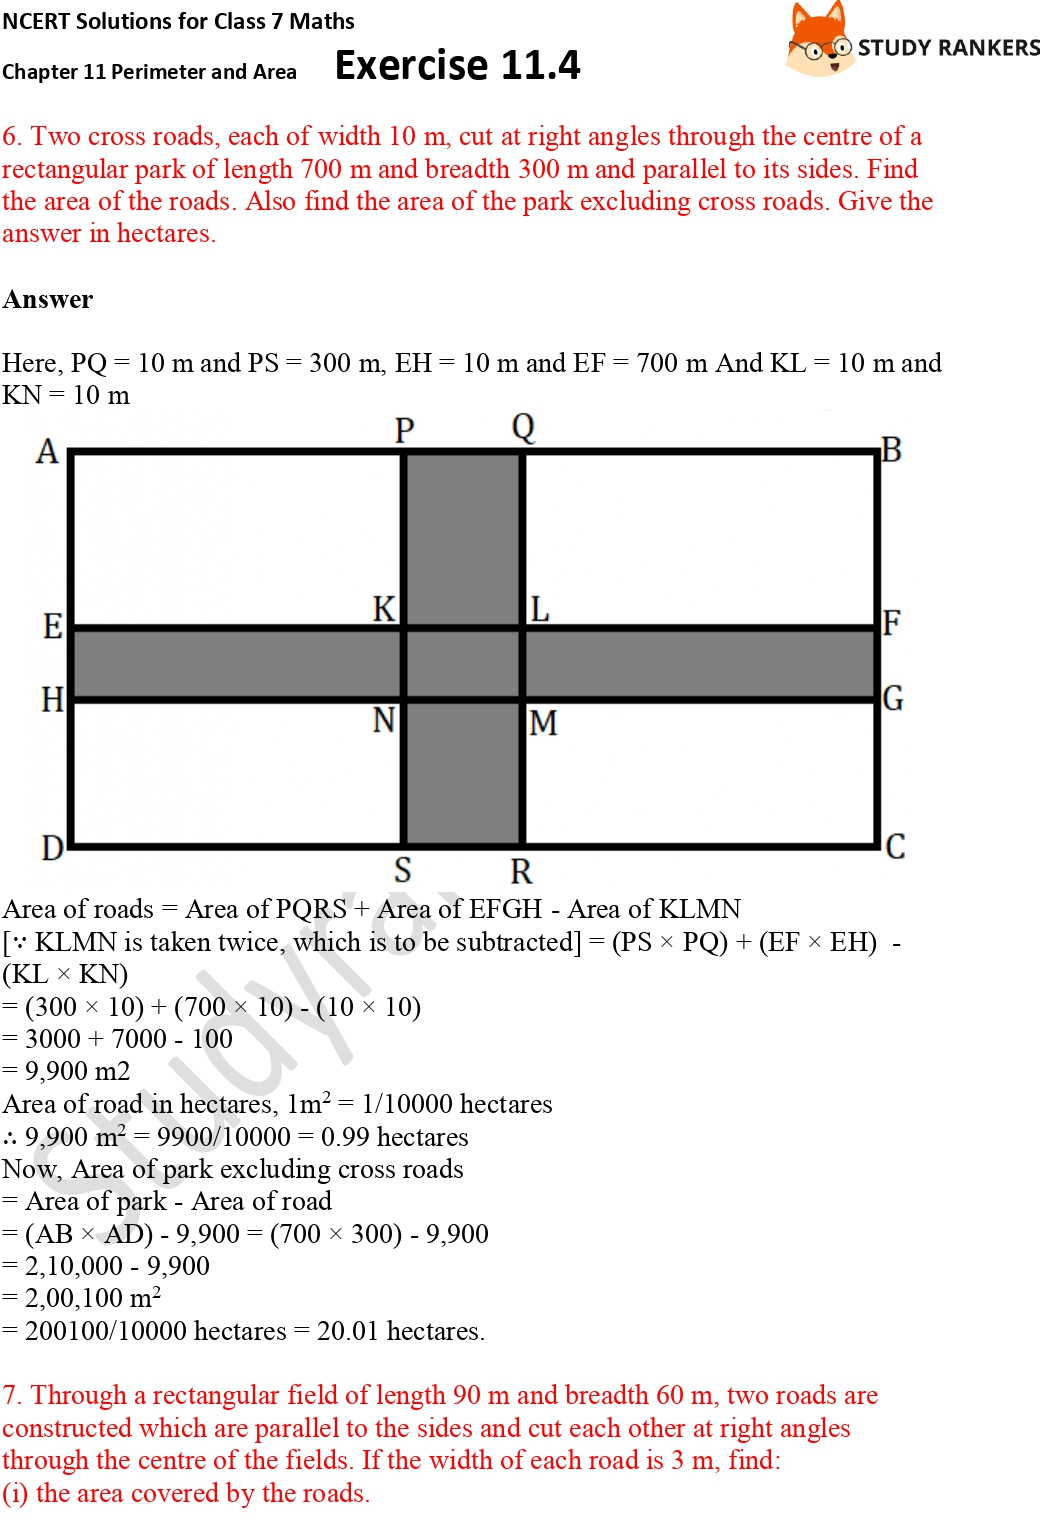 NCERT Solutions for Class 7 Maths Ch 11 Perimeter and Area Exercise 11.4 Part 4